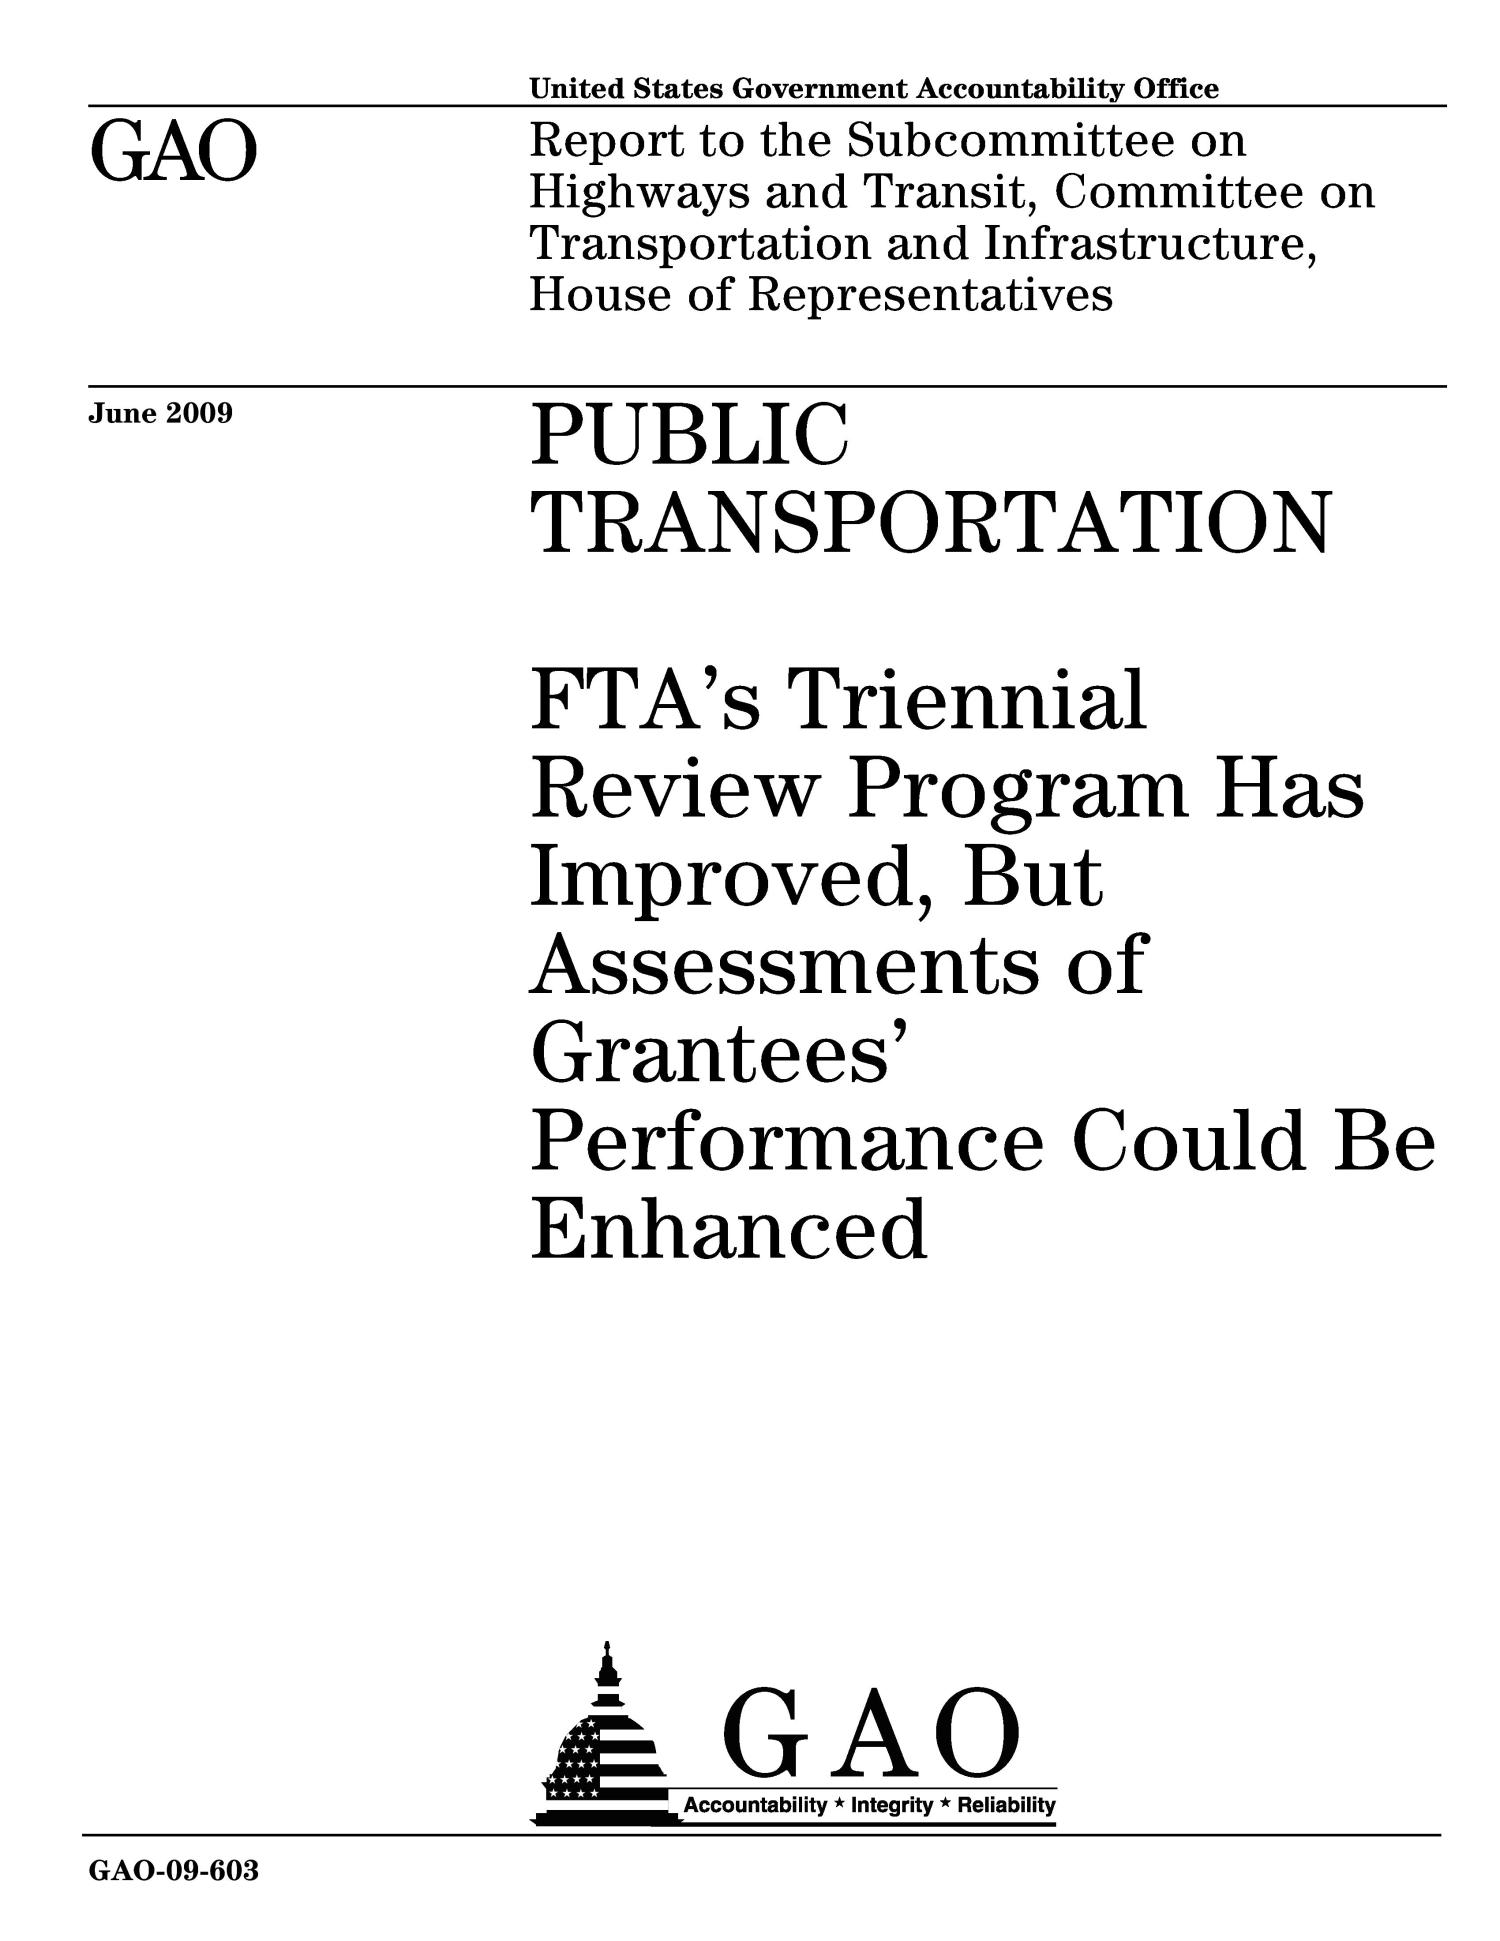 Public Transportation: FTA's Triennial Review Program Has Improved, But Assessments of Grantees' Performance Could Be Enhanced                                                                                                      [Sequence #]: 1 of 44